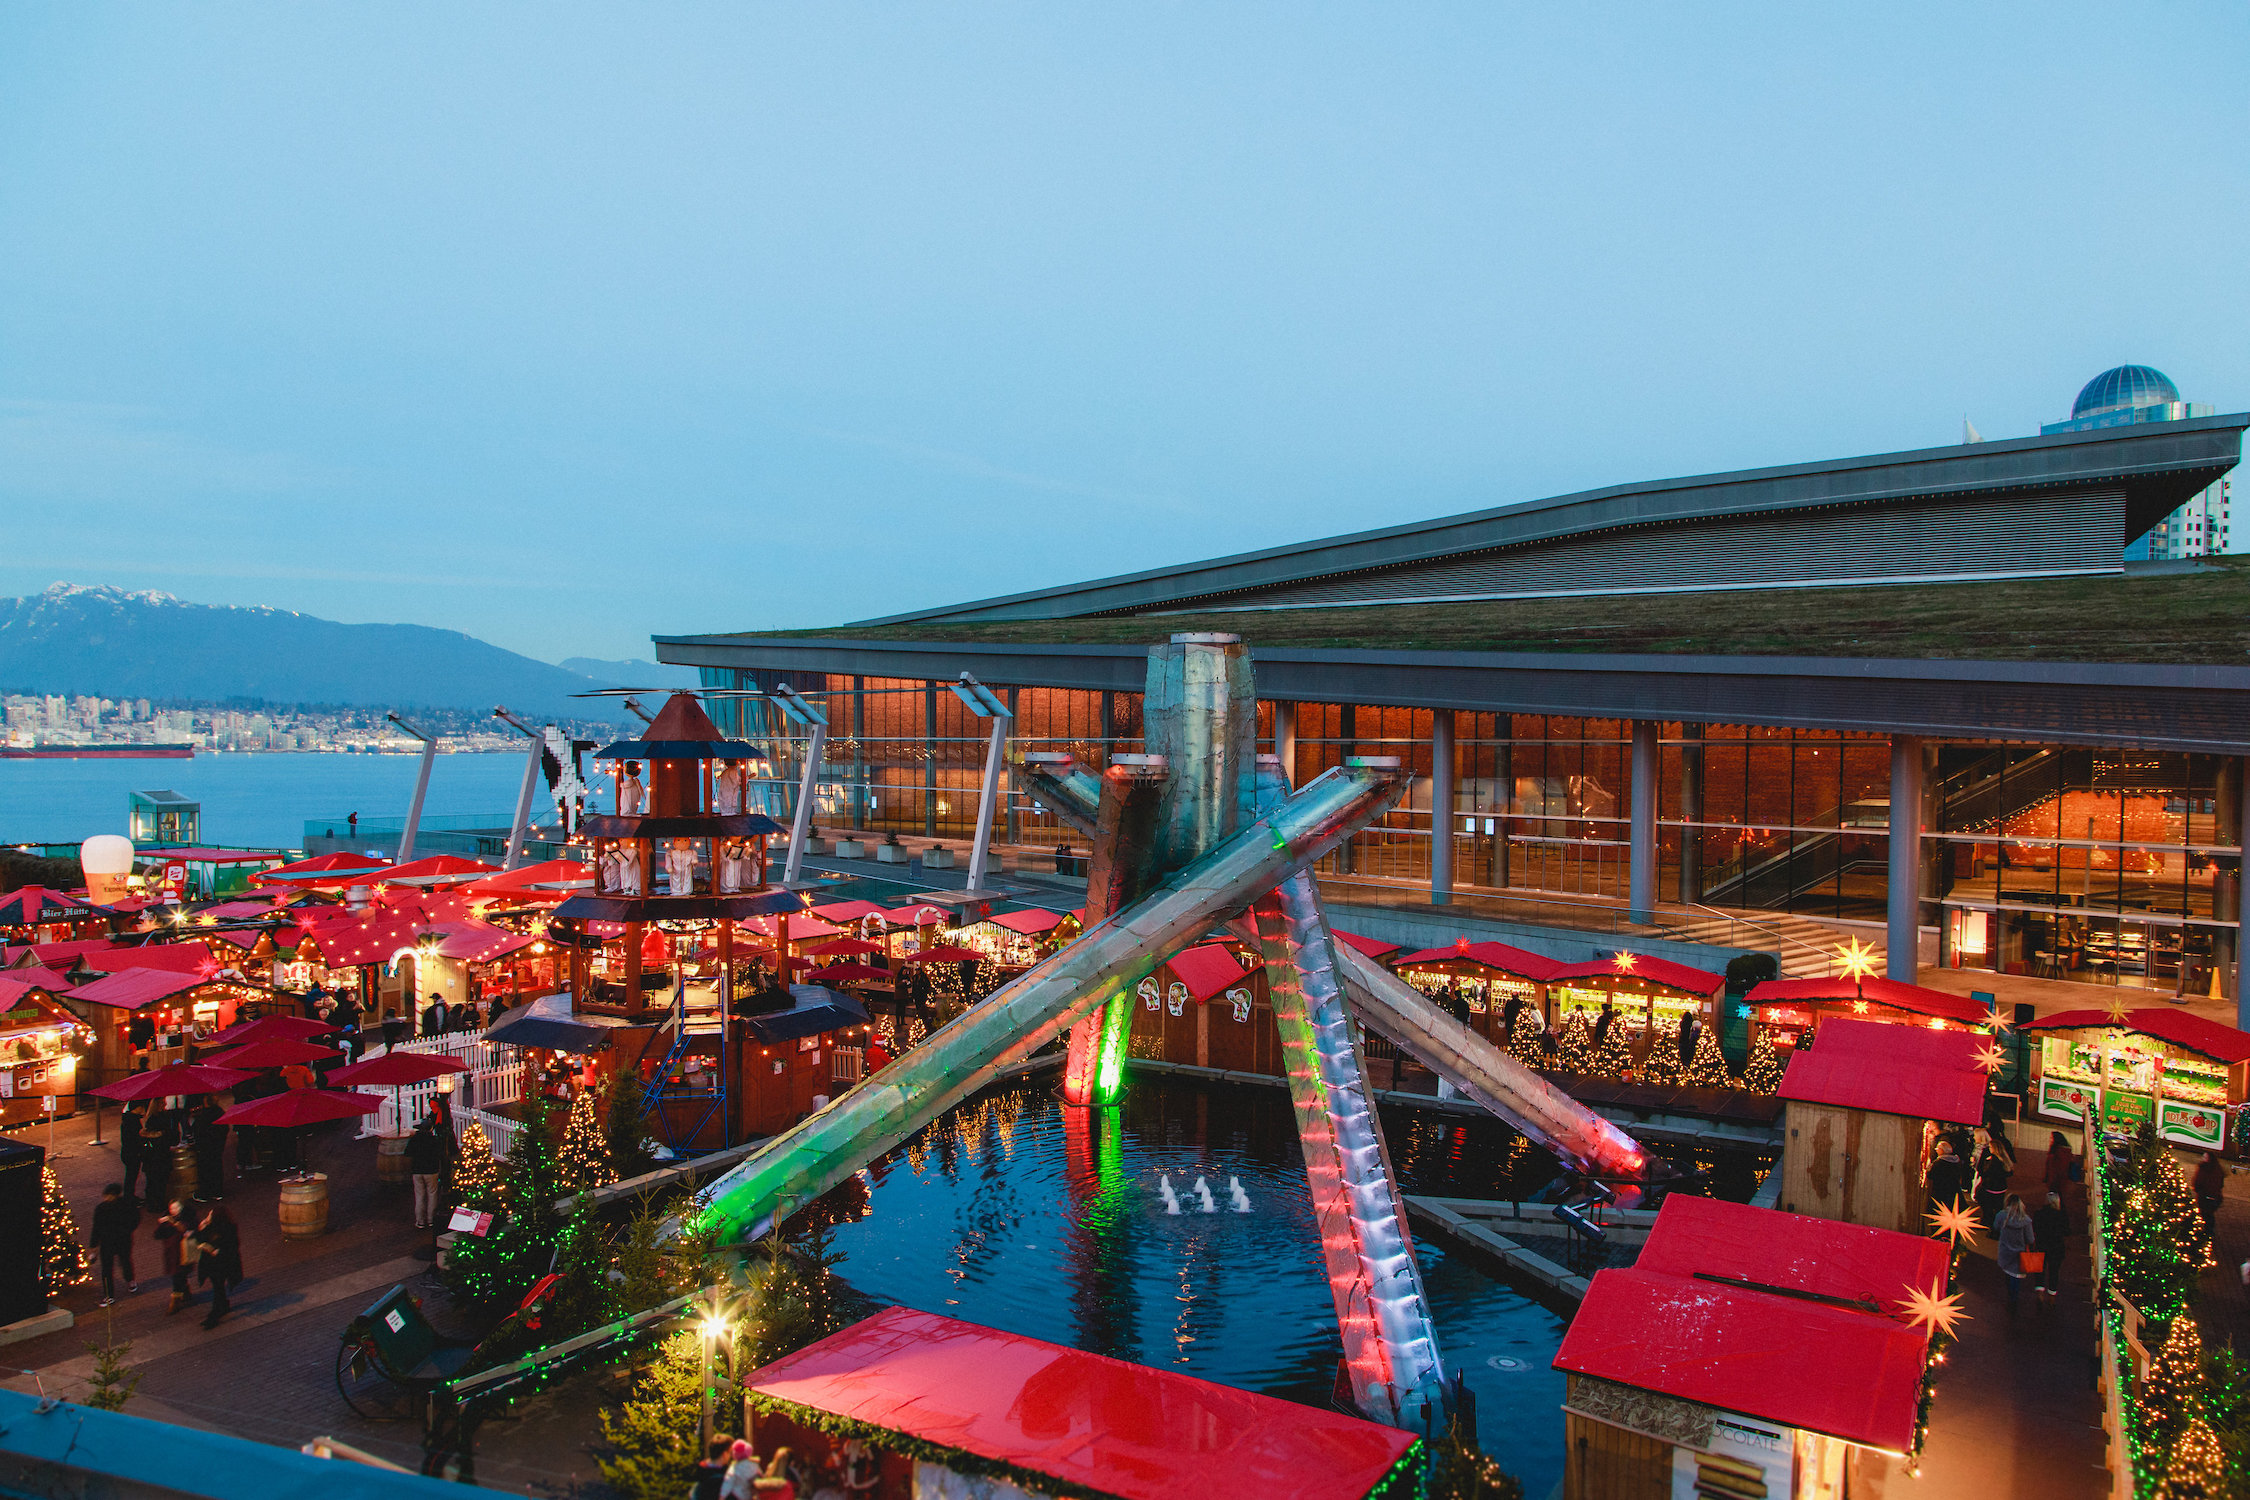 Vancouver Christmas Market—November 20-December 24, 2019